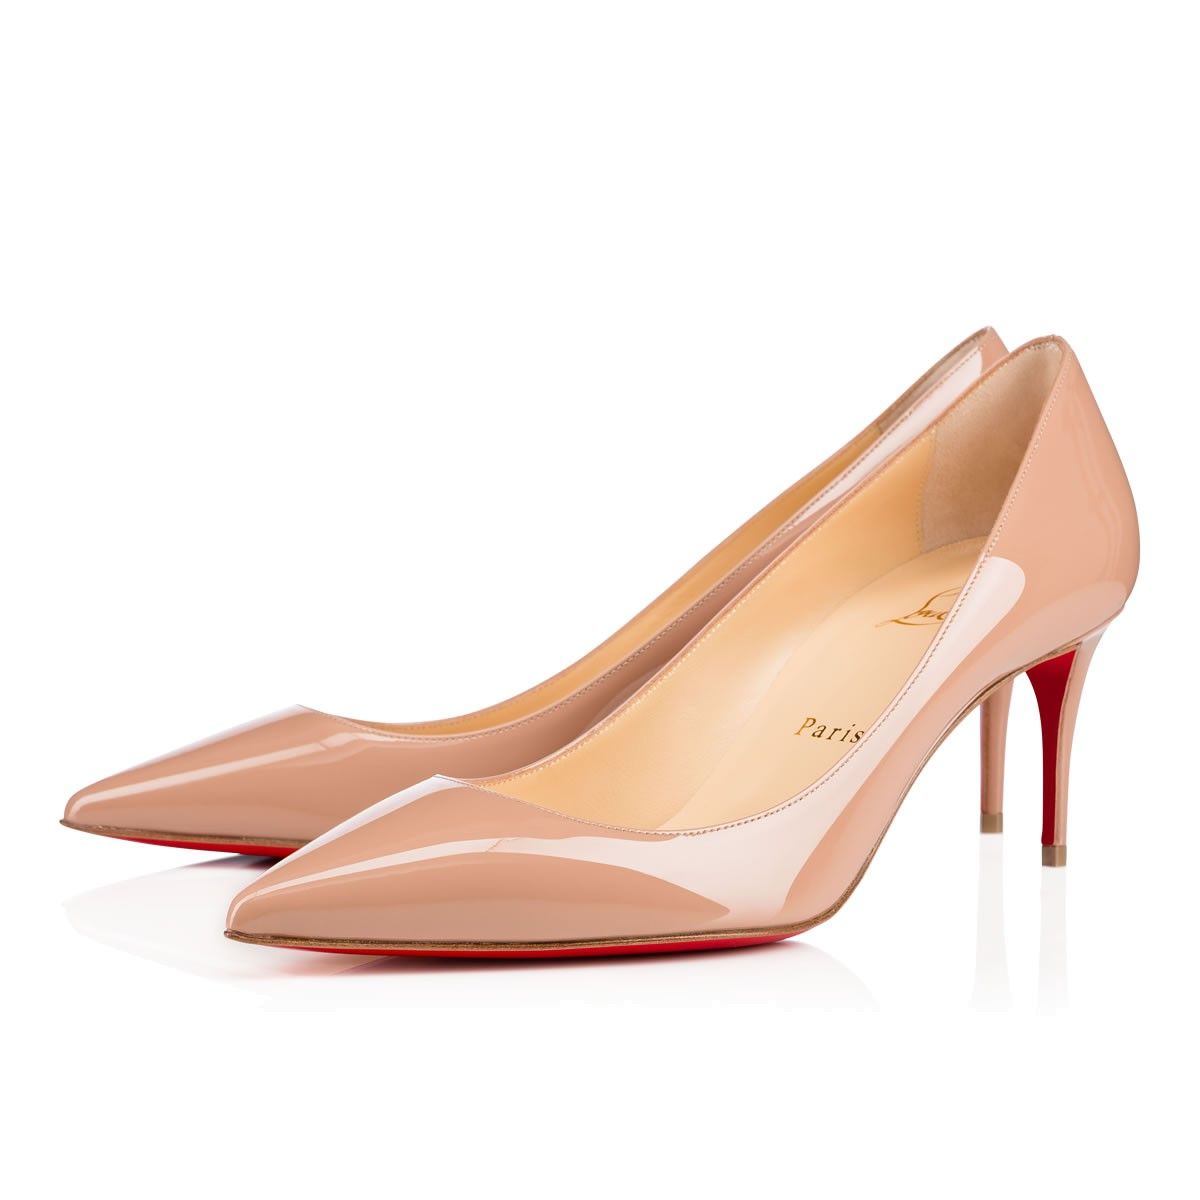 Souliers Femme - Kate Vernis - Christian Louboutin